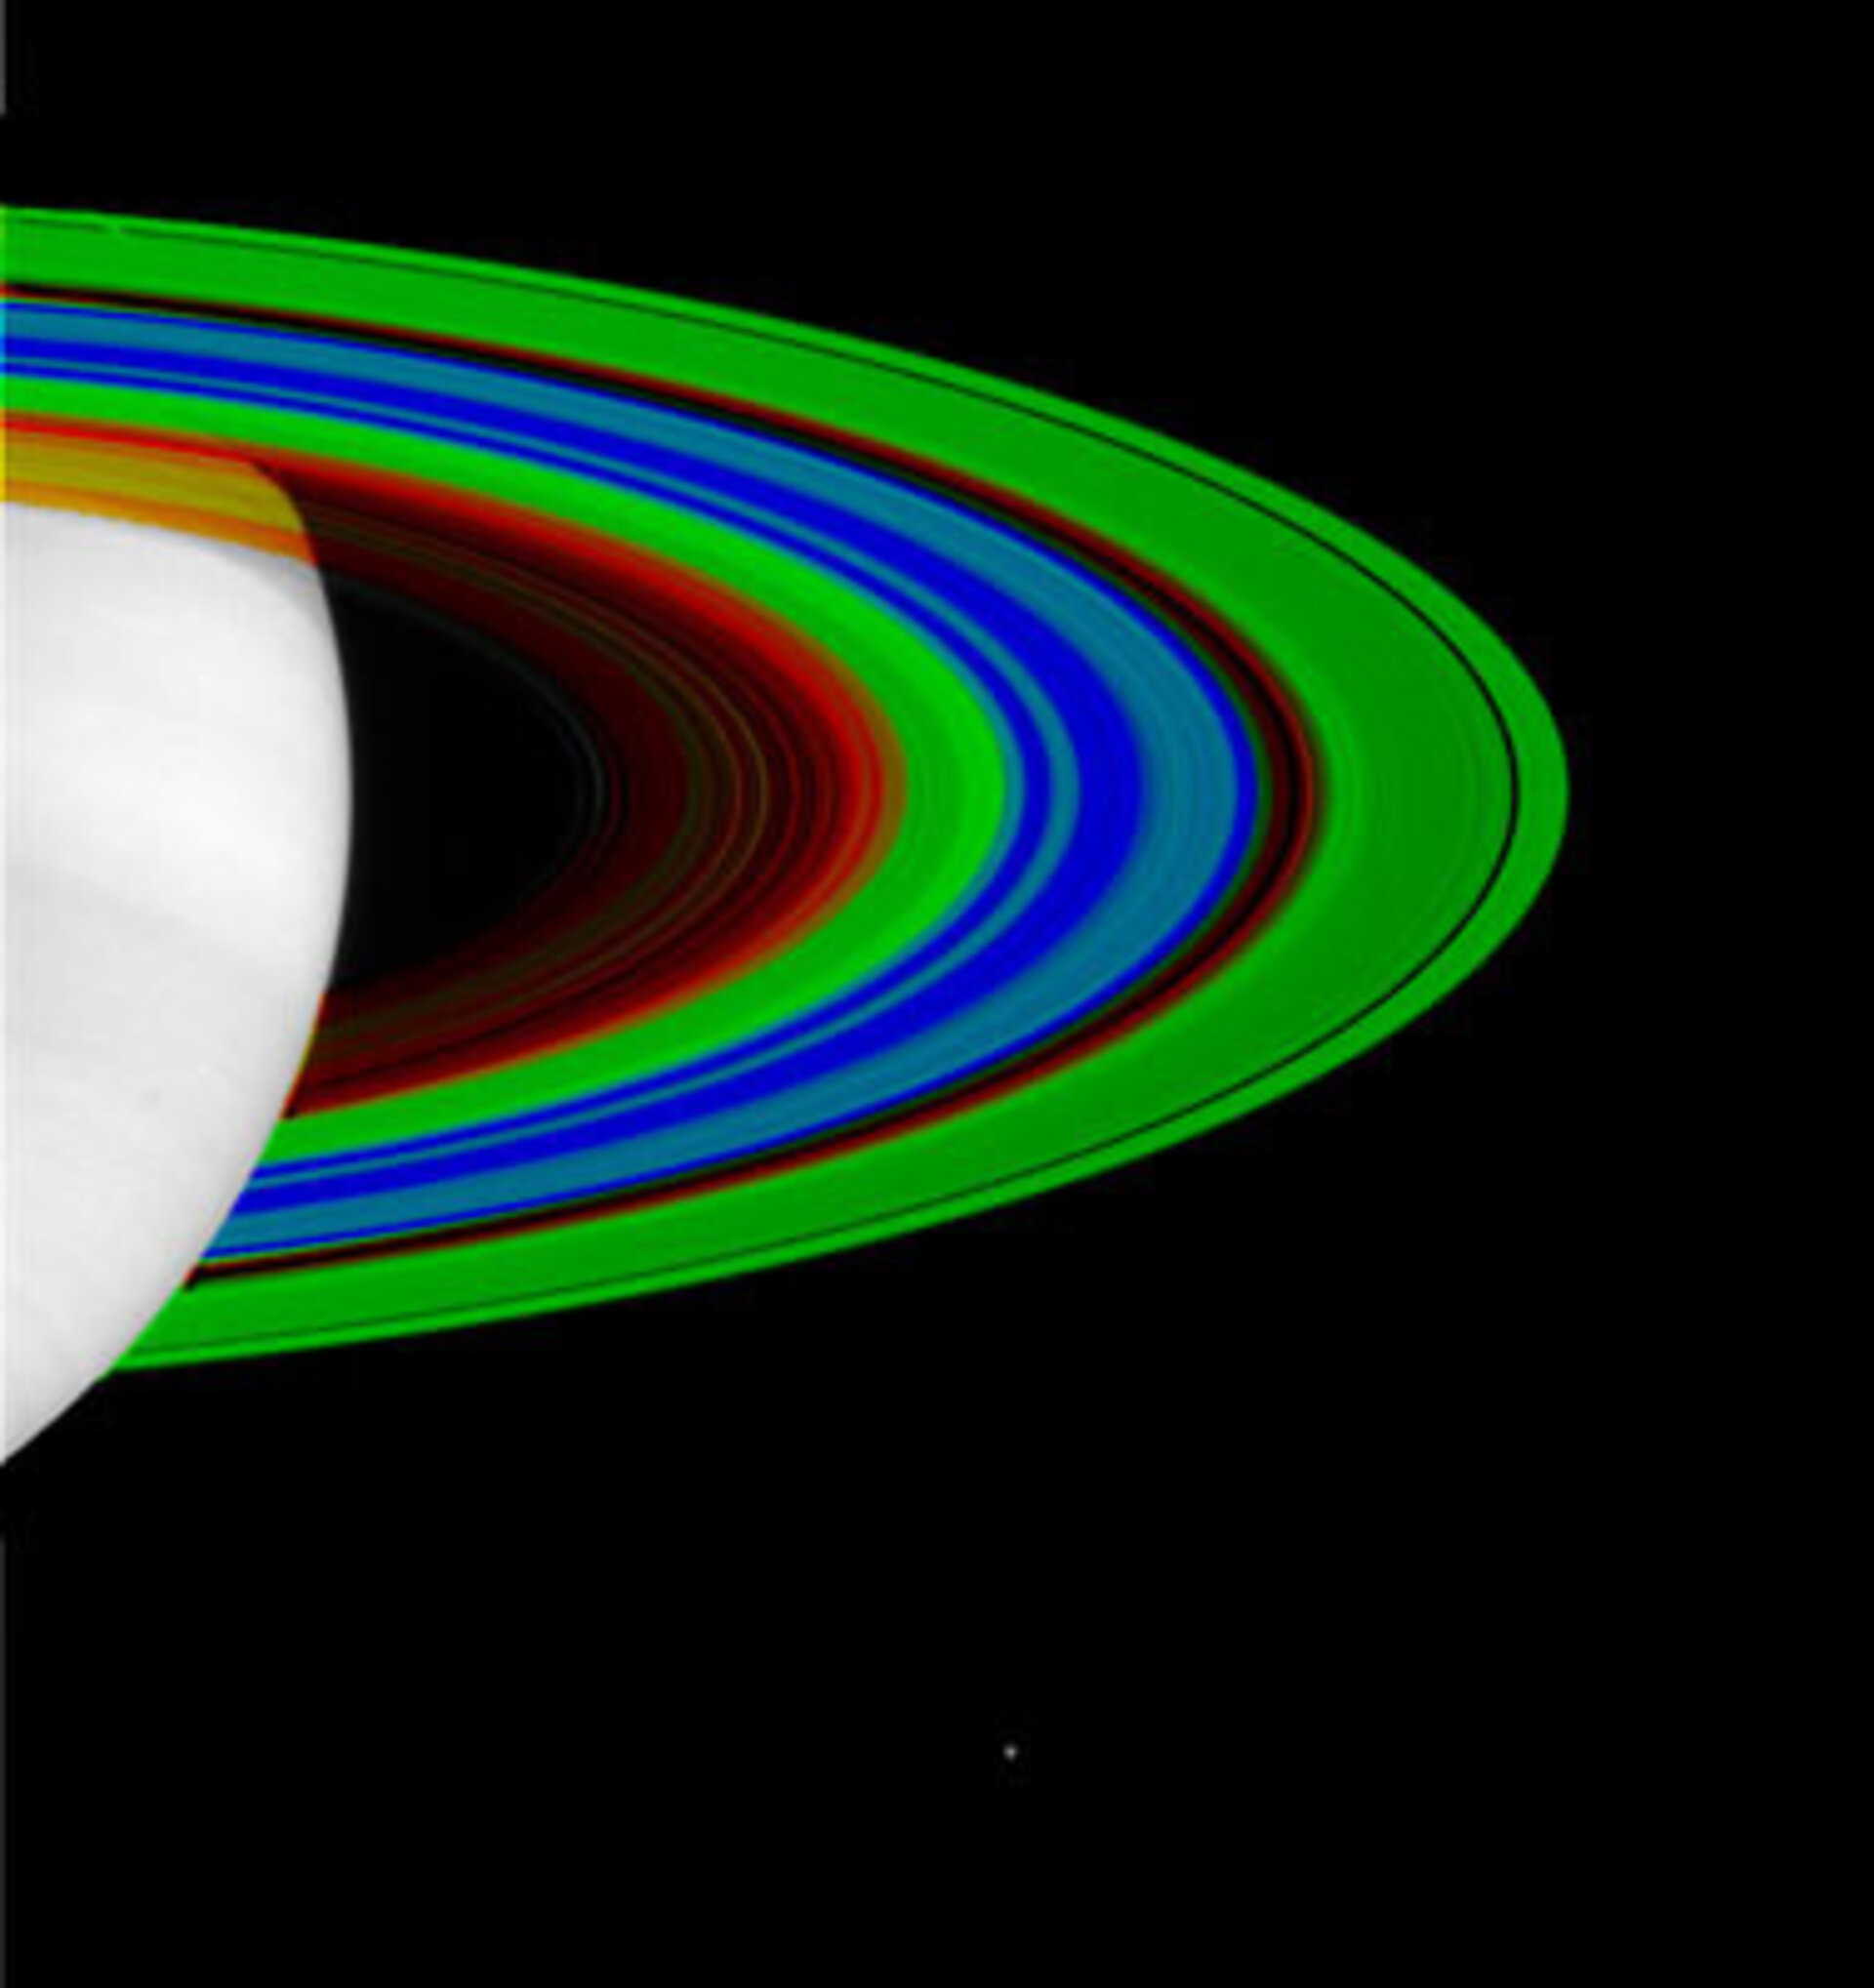 Saturn's rings: cold and colder